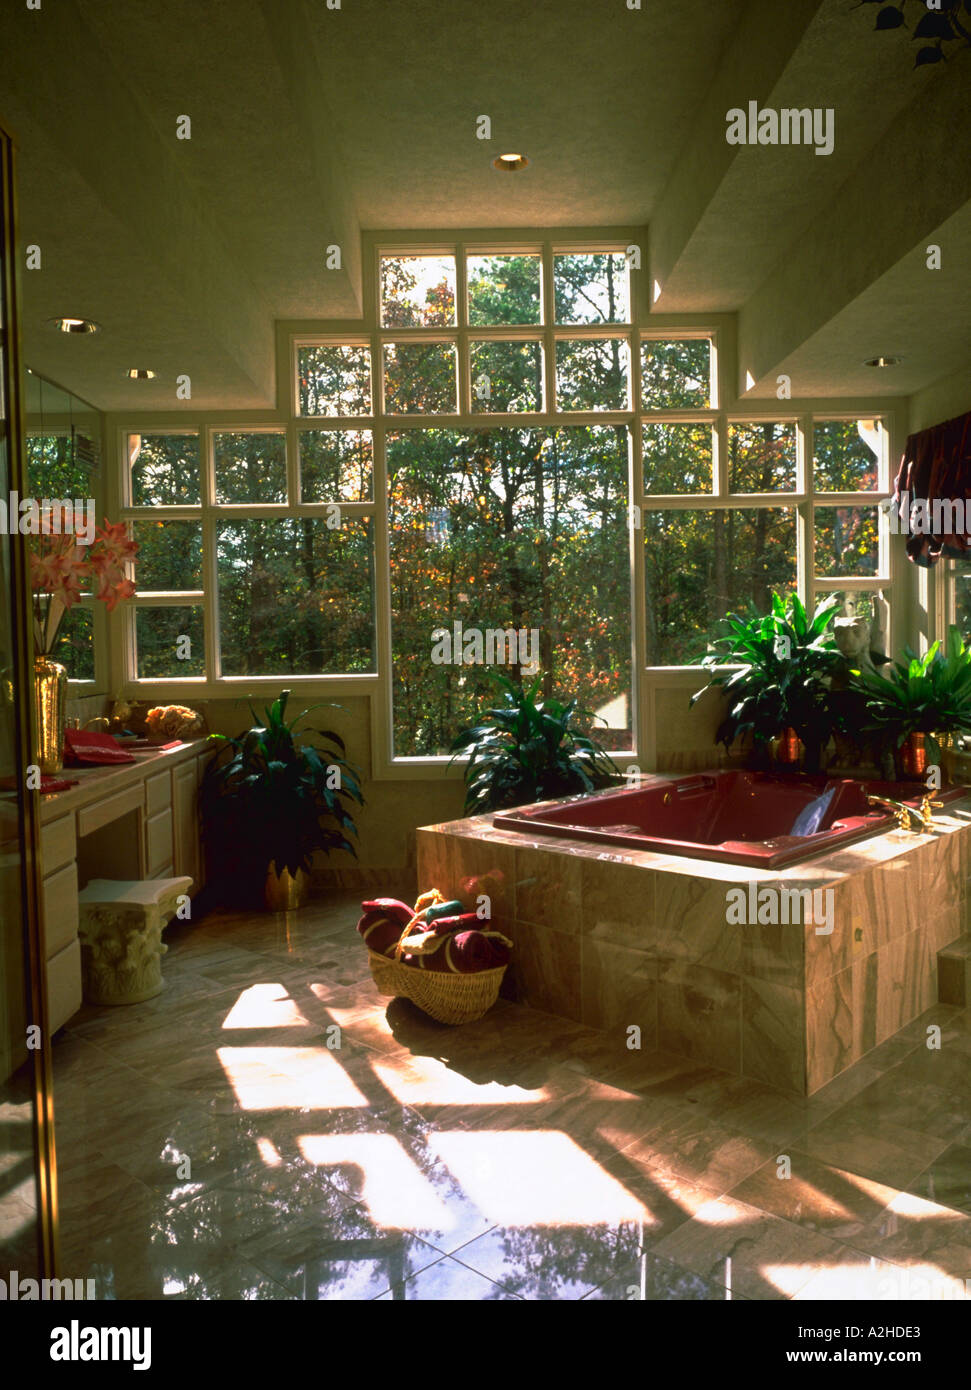 Interior of elegant bathroom with a Jacuzzi tub and large window ...